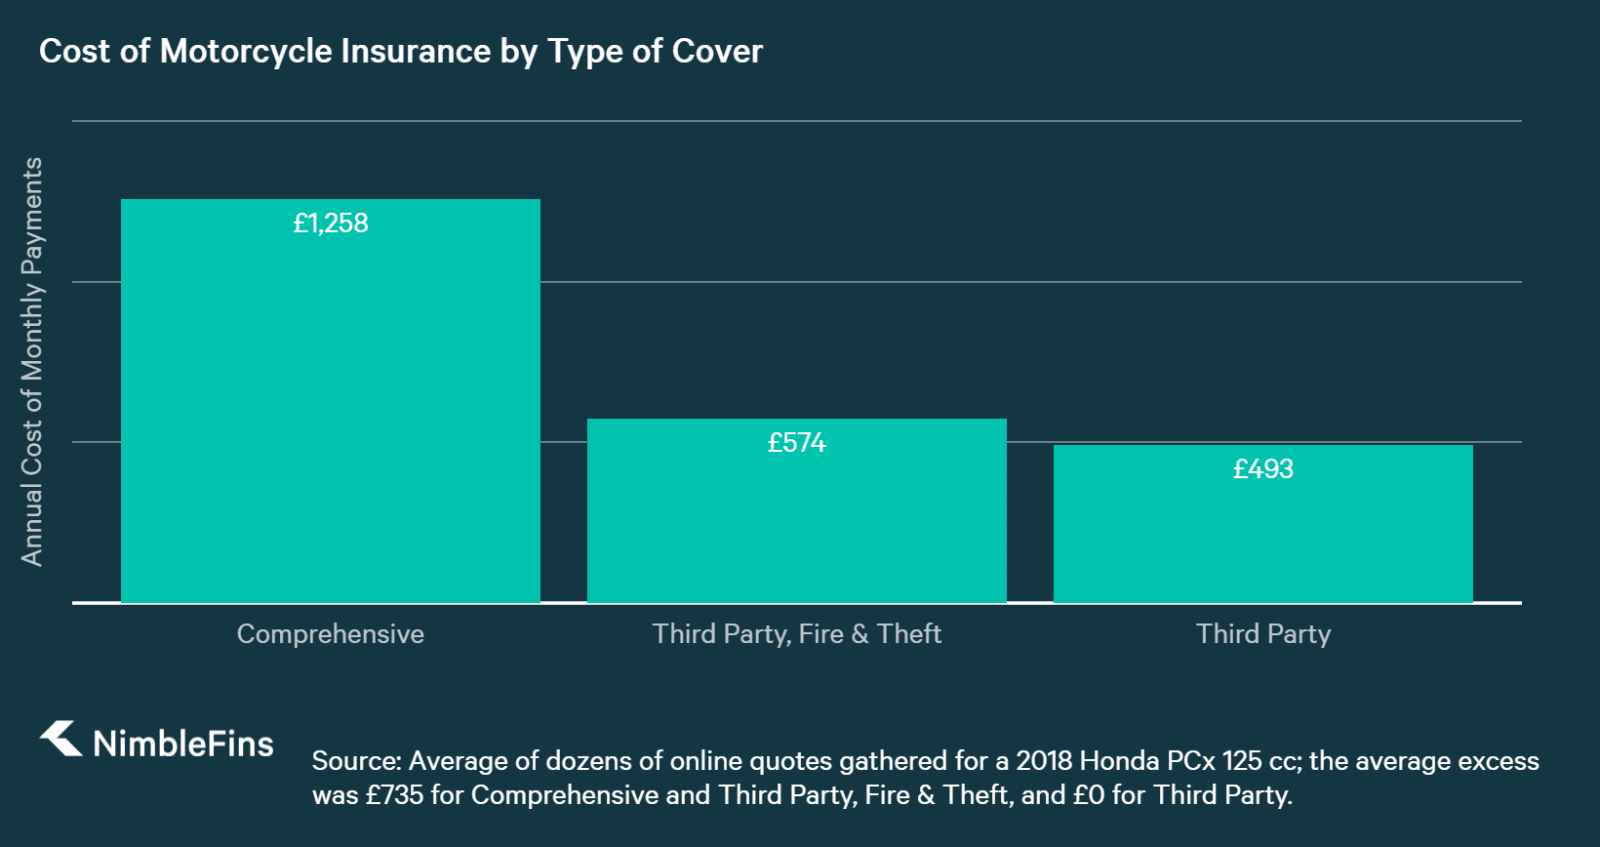 Motorcycle insurance costs for Comprehensive, Third Party, Fire & Theft   cover